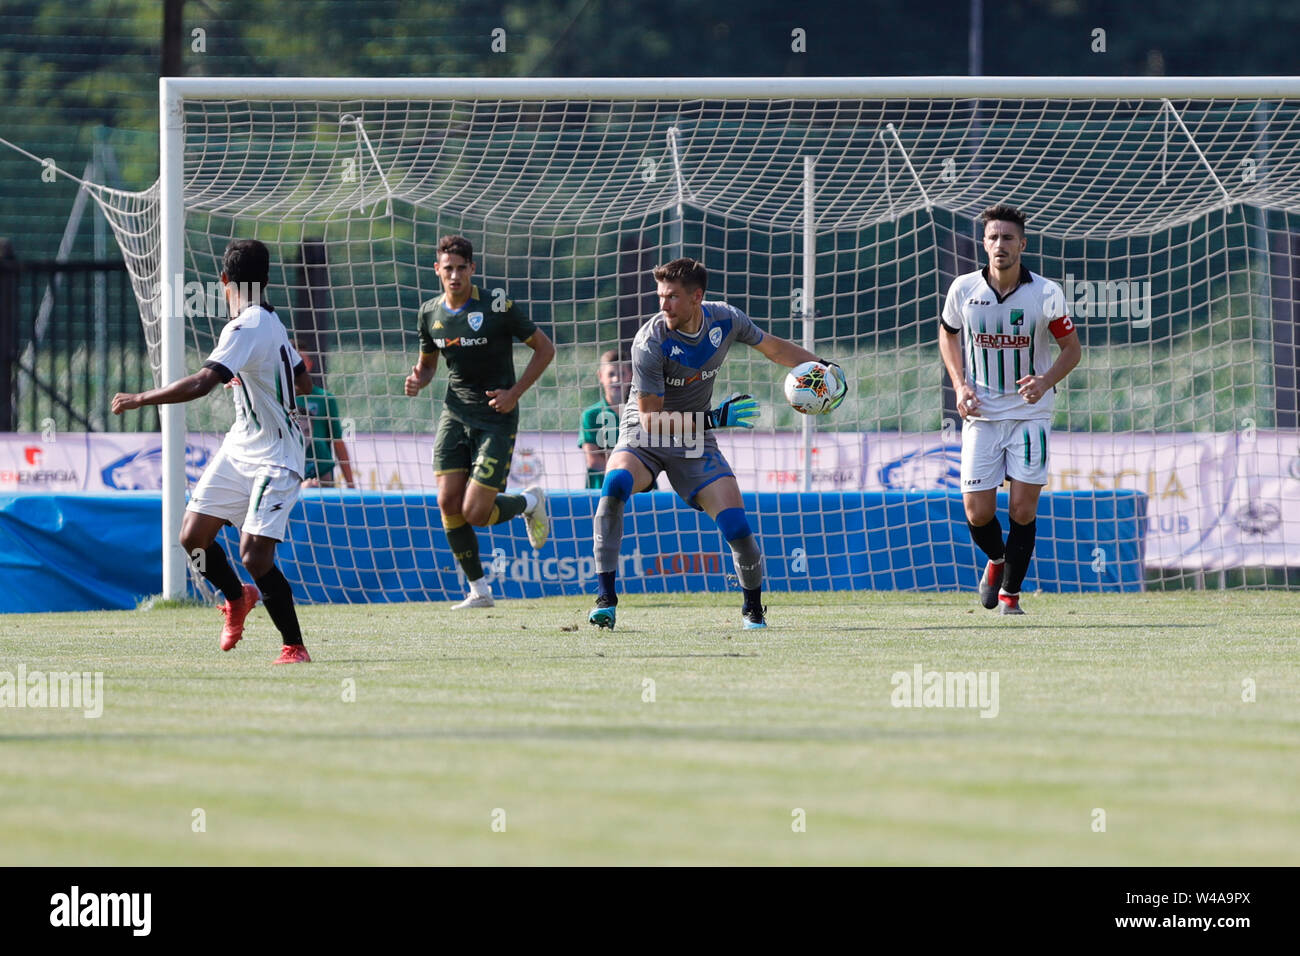 Darfo Boario, Italia. 21st July, 2019. Foto Stefano Nicoli/LaPresse21 luglio 2019 Darfo Boario (Bs), Italia sport calcio Amichevole Brescia Darfo Pre Campionato di calcio Serie A 2019/2020 - Nella foto: Jesse Jorone Photo Stefano Nicoli/LaPresse July 20, 2019 Darfo Boario (Bs), Italy sport soccer Friendly match Brescia Darfo League A TIM 2019/2020 - In the pic:Jesse Jorone Credit: LaPresse/Alamy Live News - Stock Image